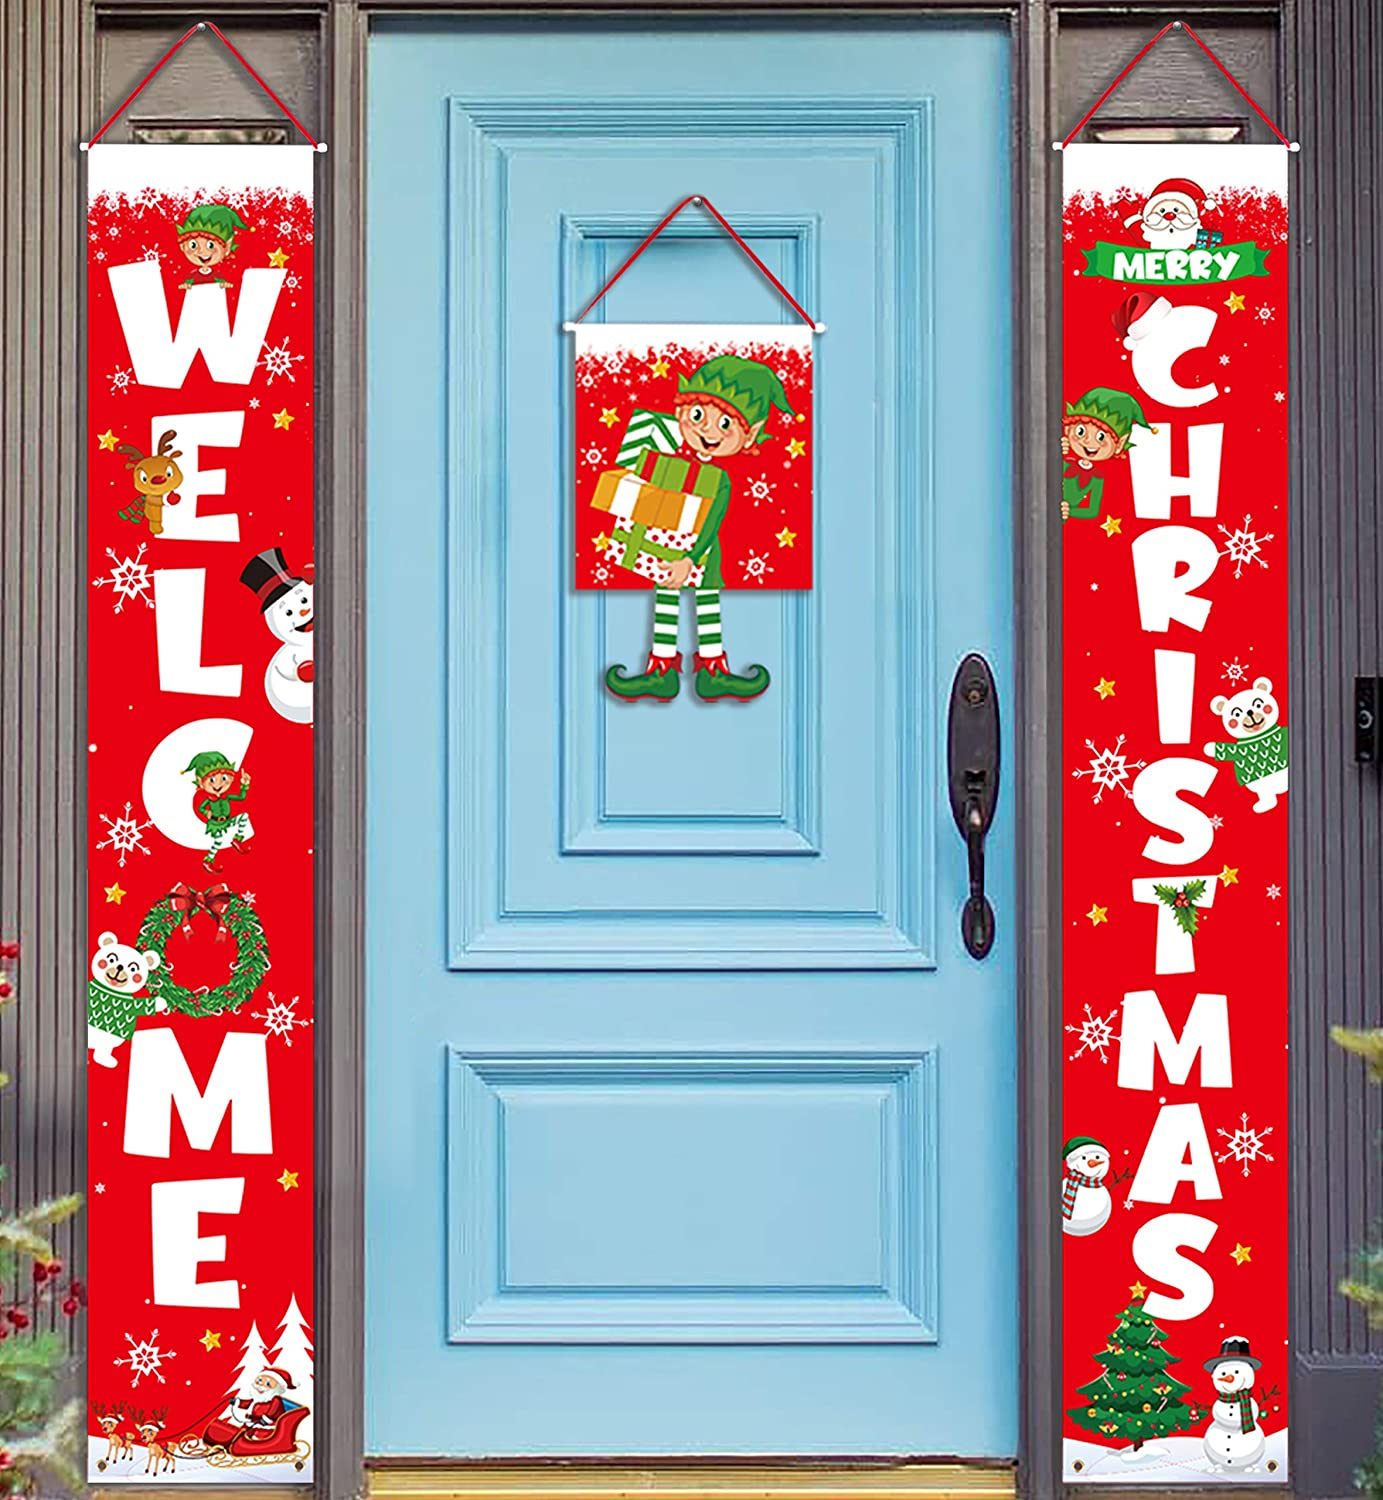 3 Pieces Christmas Decorations Banner - Welcome Christmas Porch Sign Elf Decor Xmas Hanging Front Door Indoor Outdoor Holiday Party Supplies